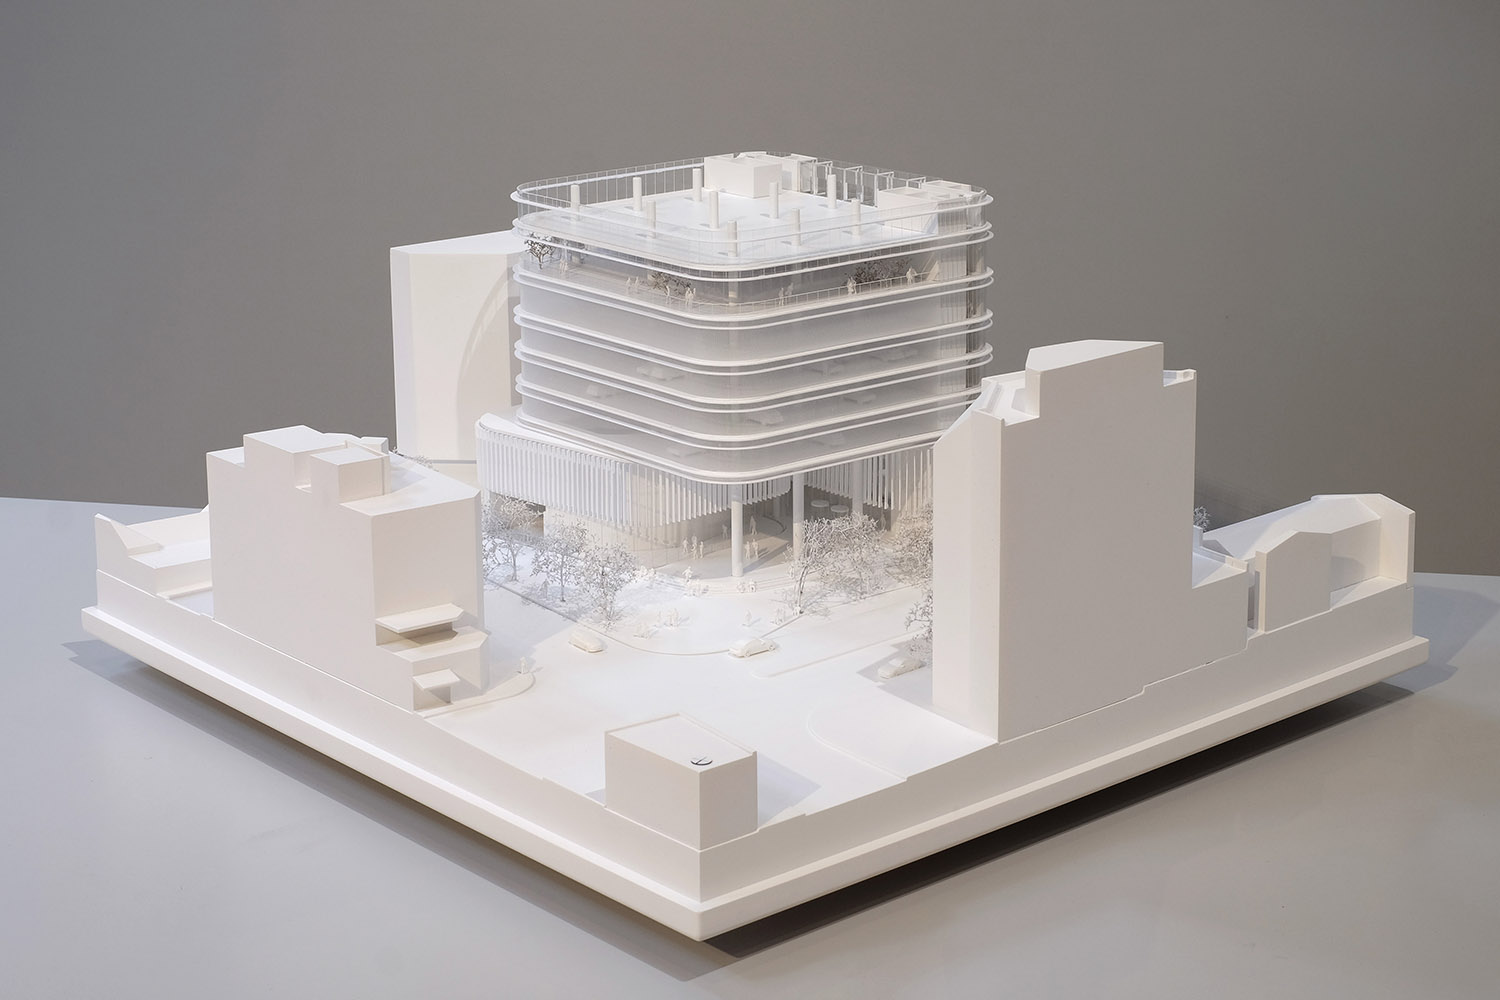 Cross section architectural model